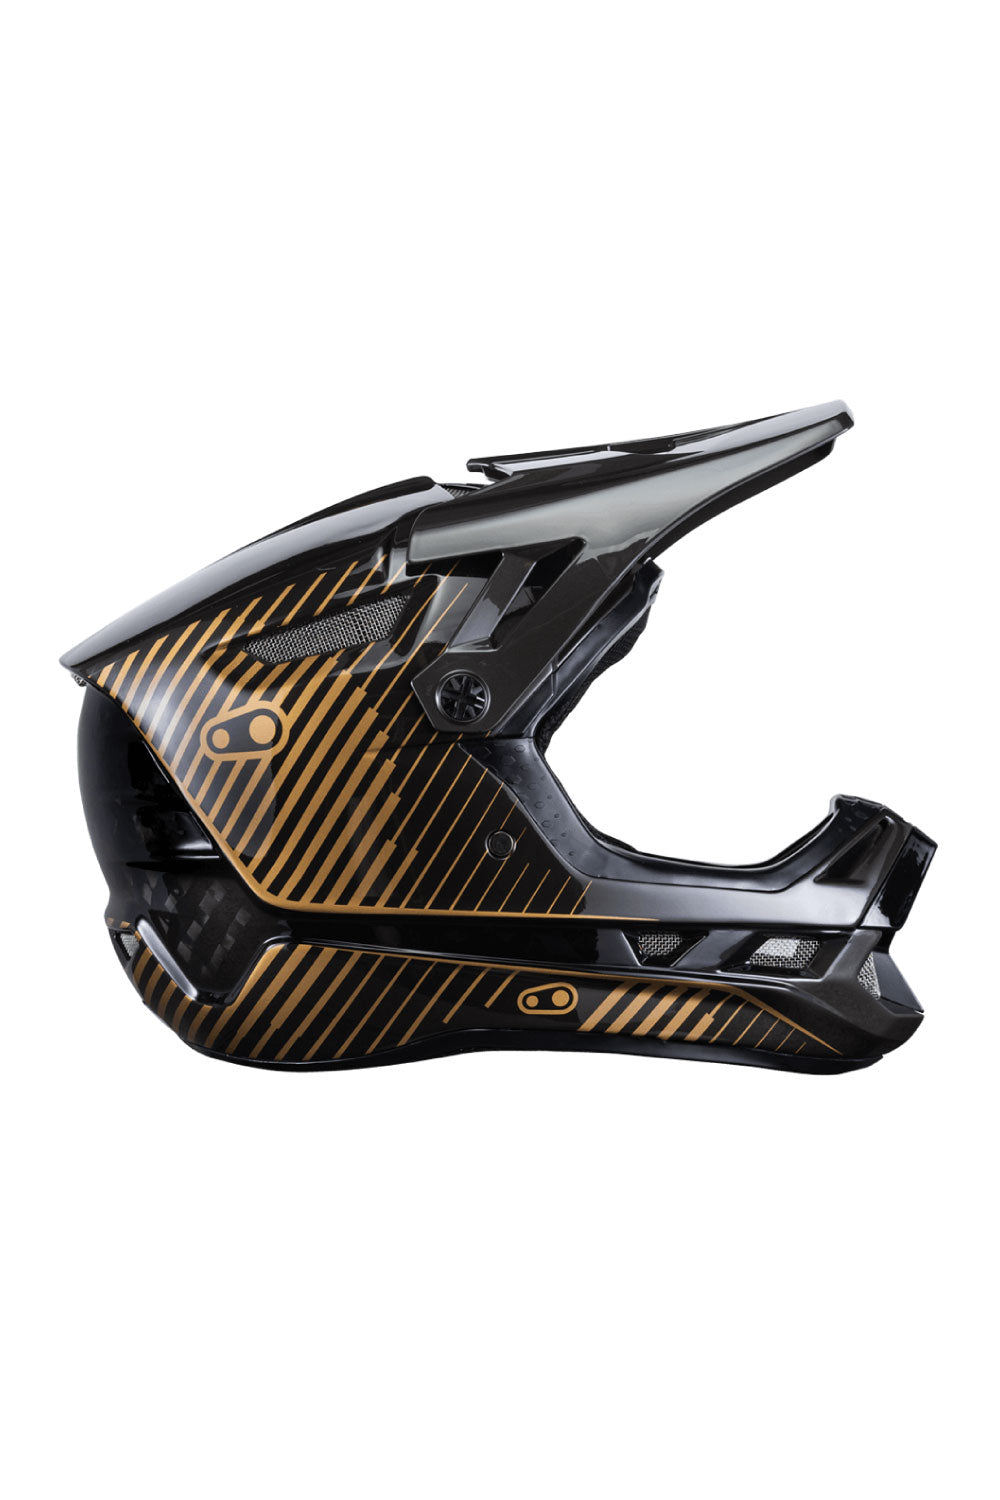 Crank Brothers X 100% Aircraft Men's Carbon MTB Bike Helmet with MIPS